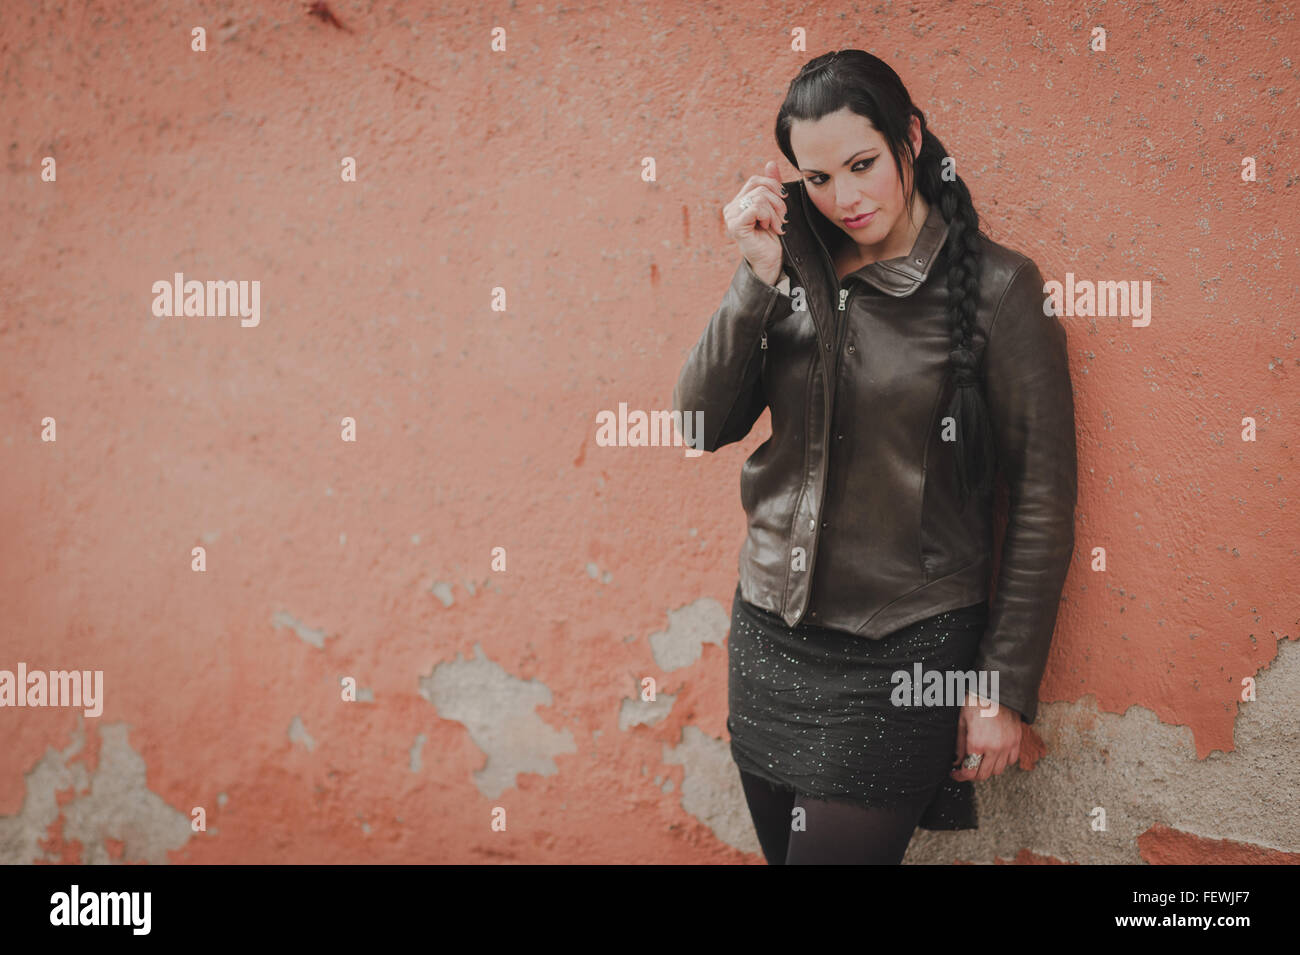 Woman Leaning On Wall Photo Stock